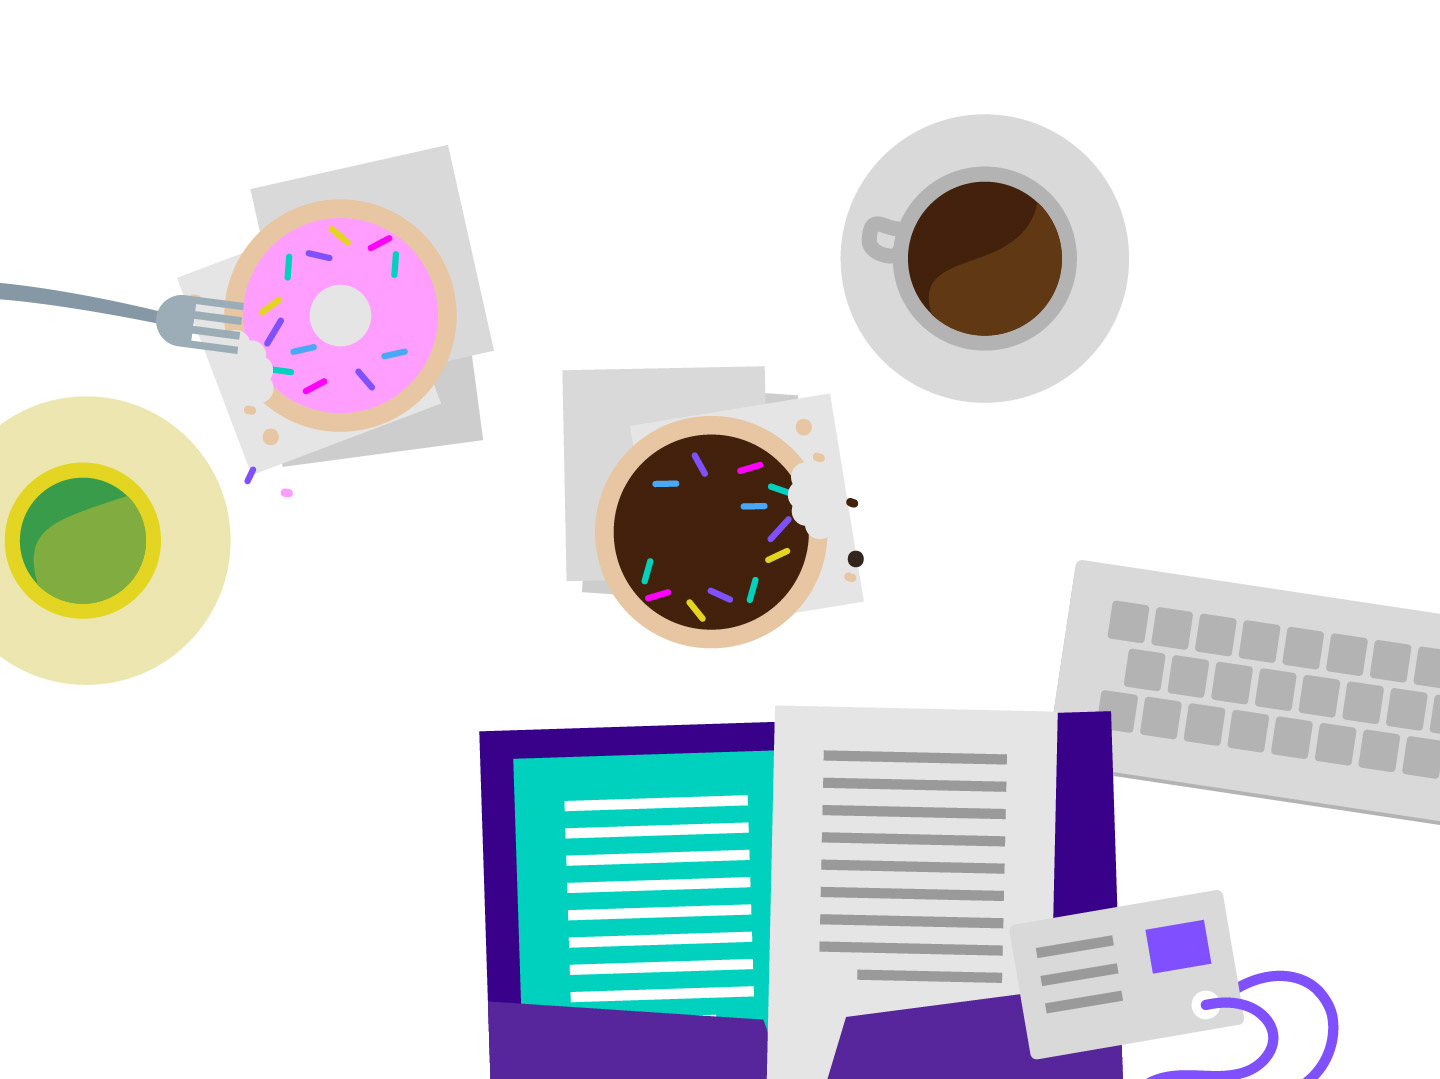 donut_illustrations.jpg